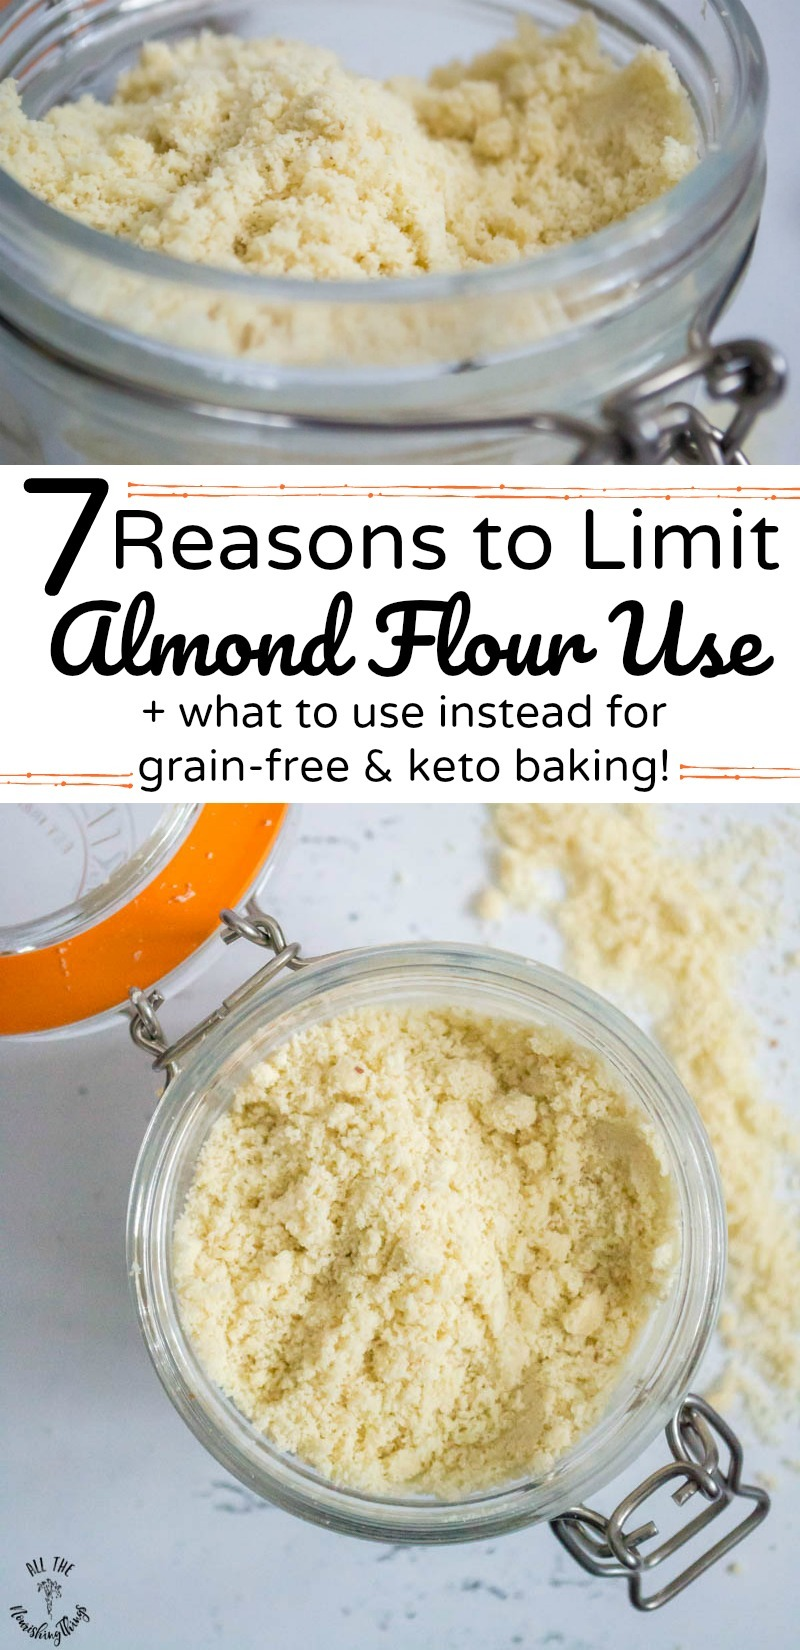 collage of 2 images of jar of almond flour with text overlay for reasons to limit almond flour use